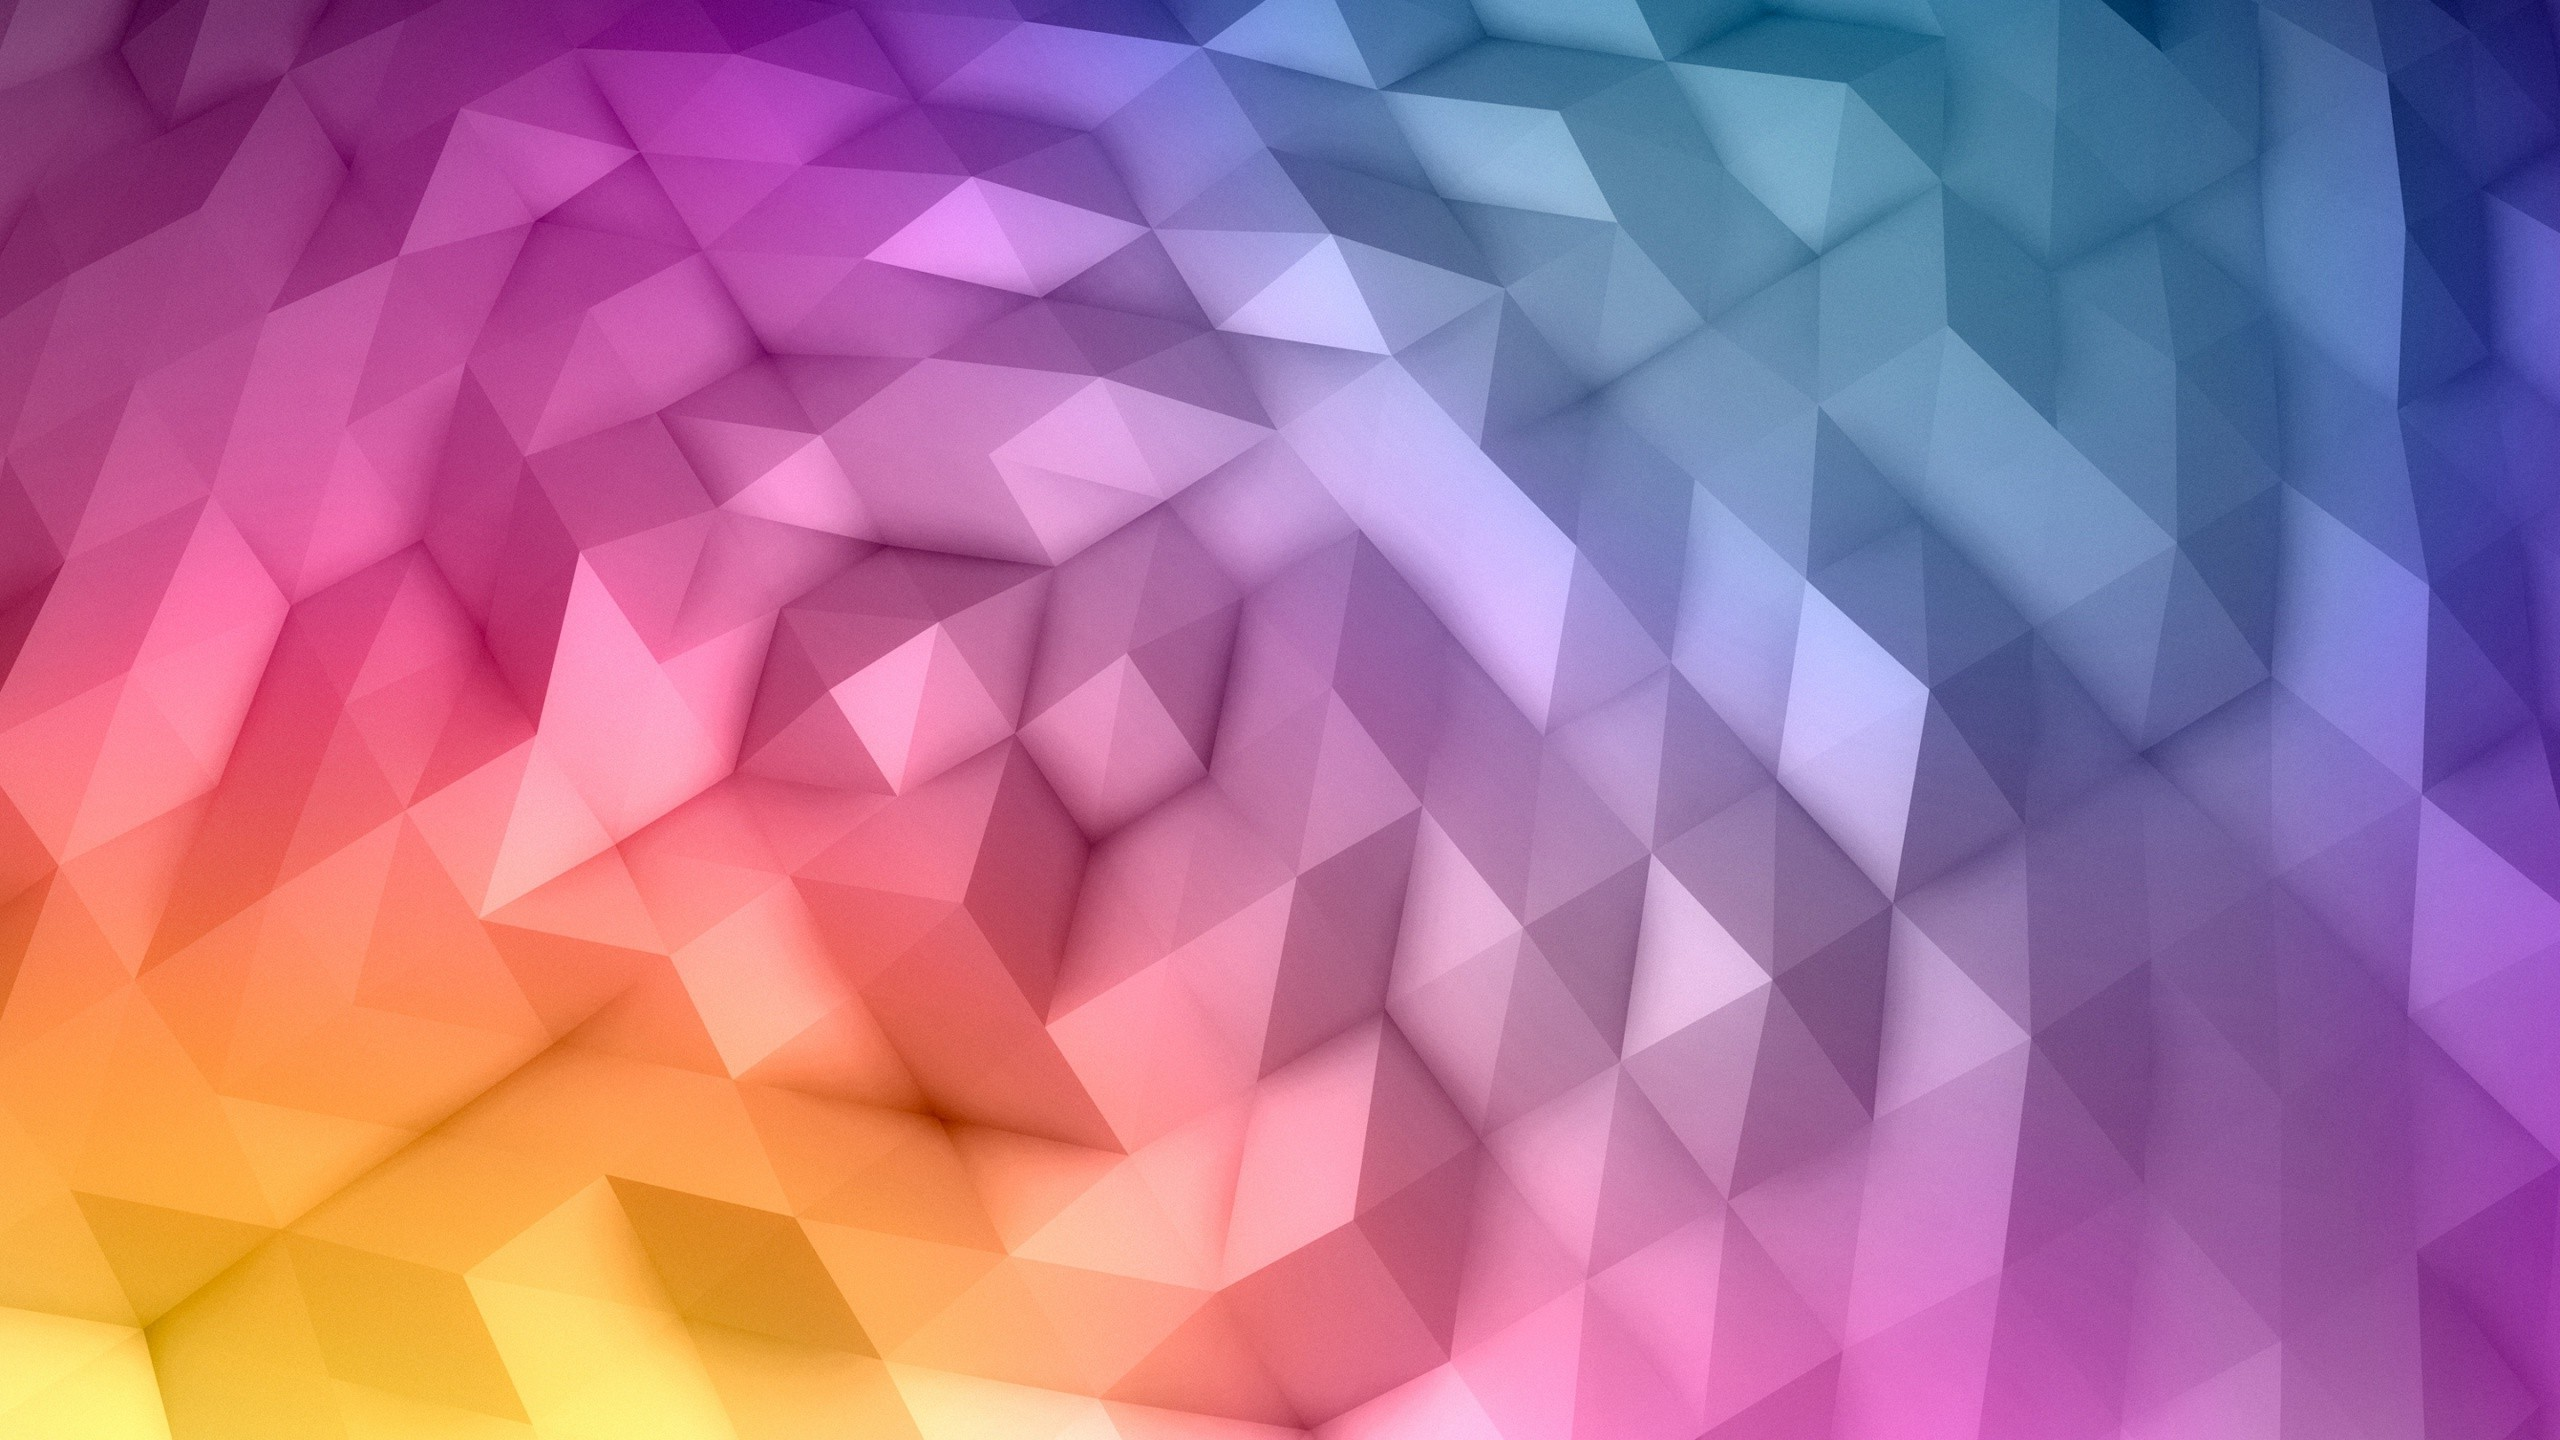 Res: 2560x1440, Abstract Low Poly Wallpapers Hd Desktop And Mobile Backgrounds